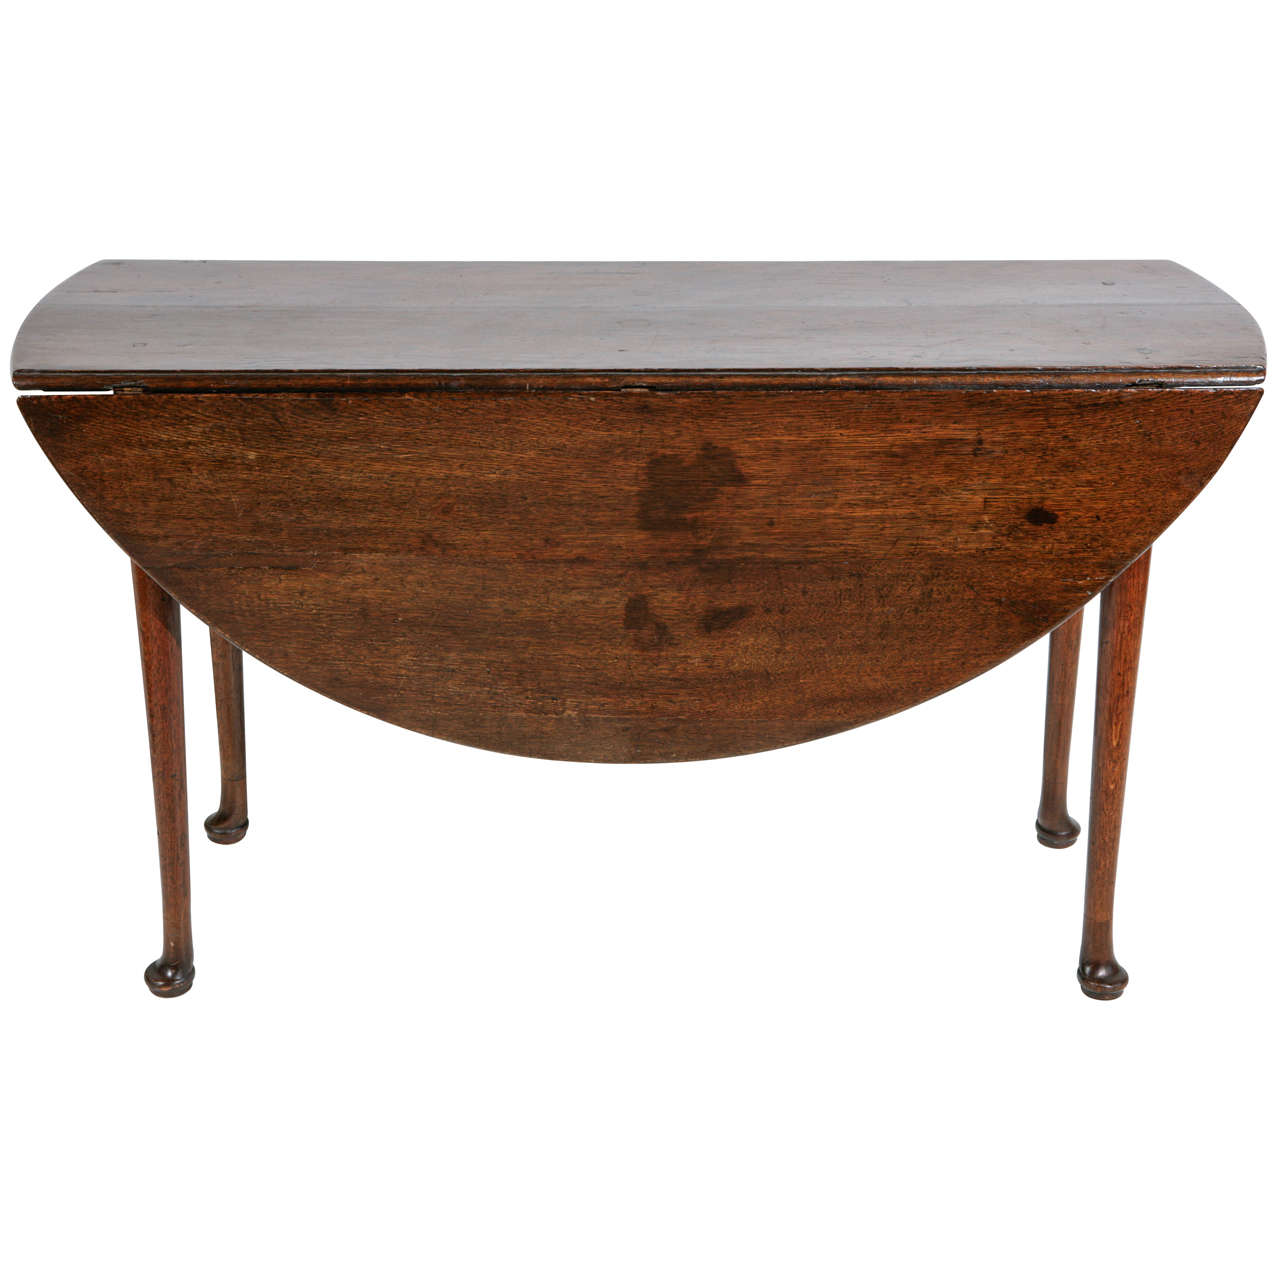 Queen anne walnut drop leaf round dining table and console for Table console